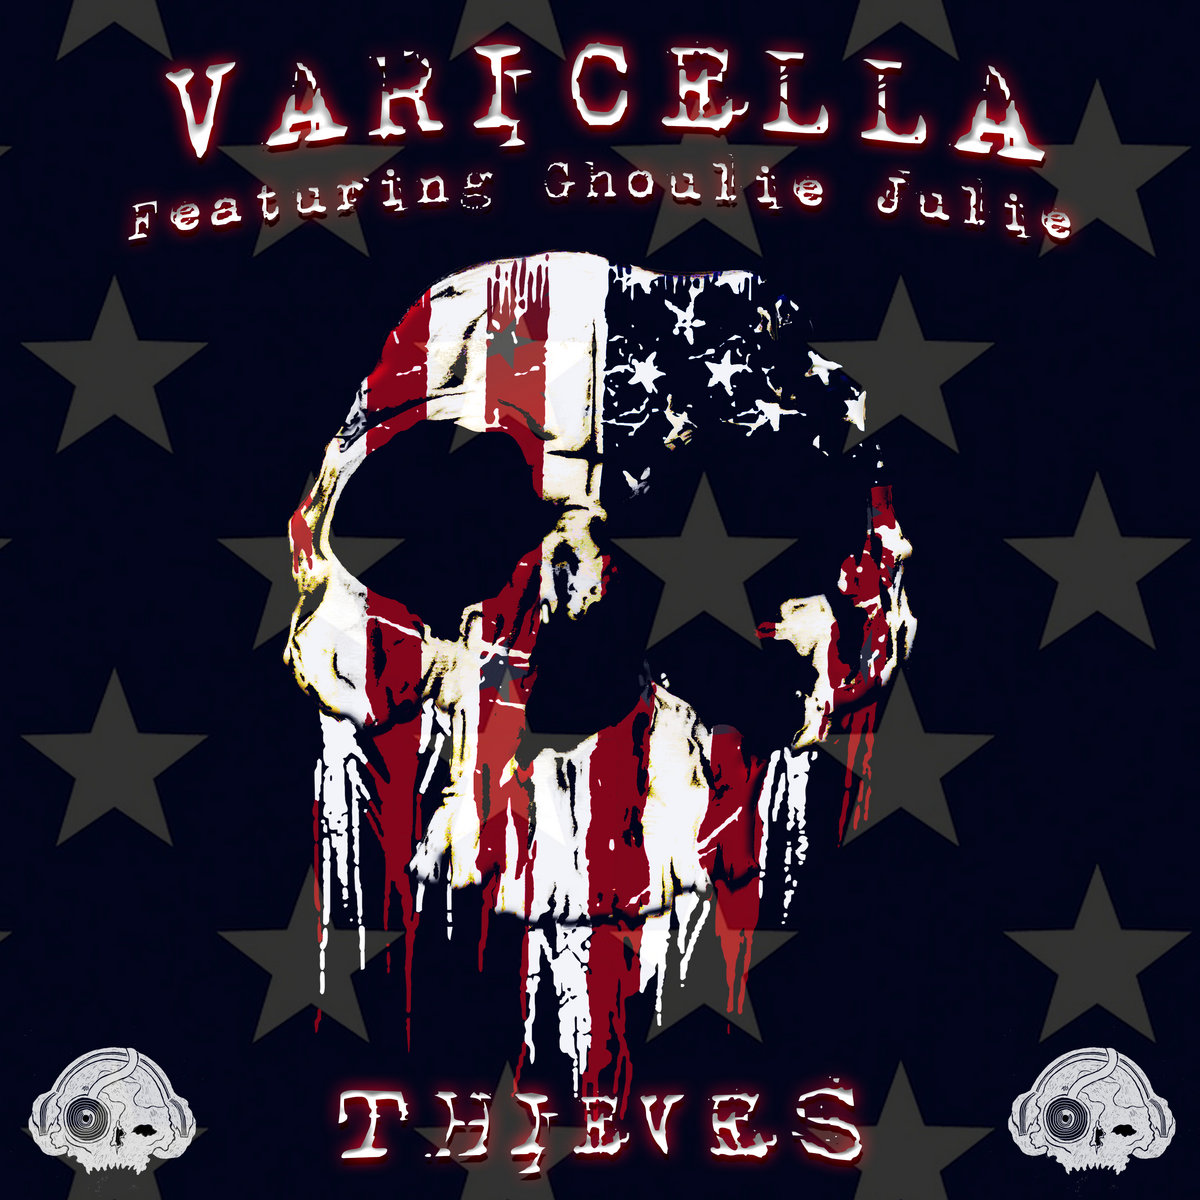 Thieves (Ministry Cover - featuring Ghoulie Julie) by Varicella